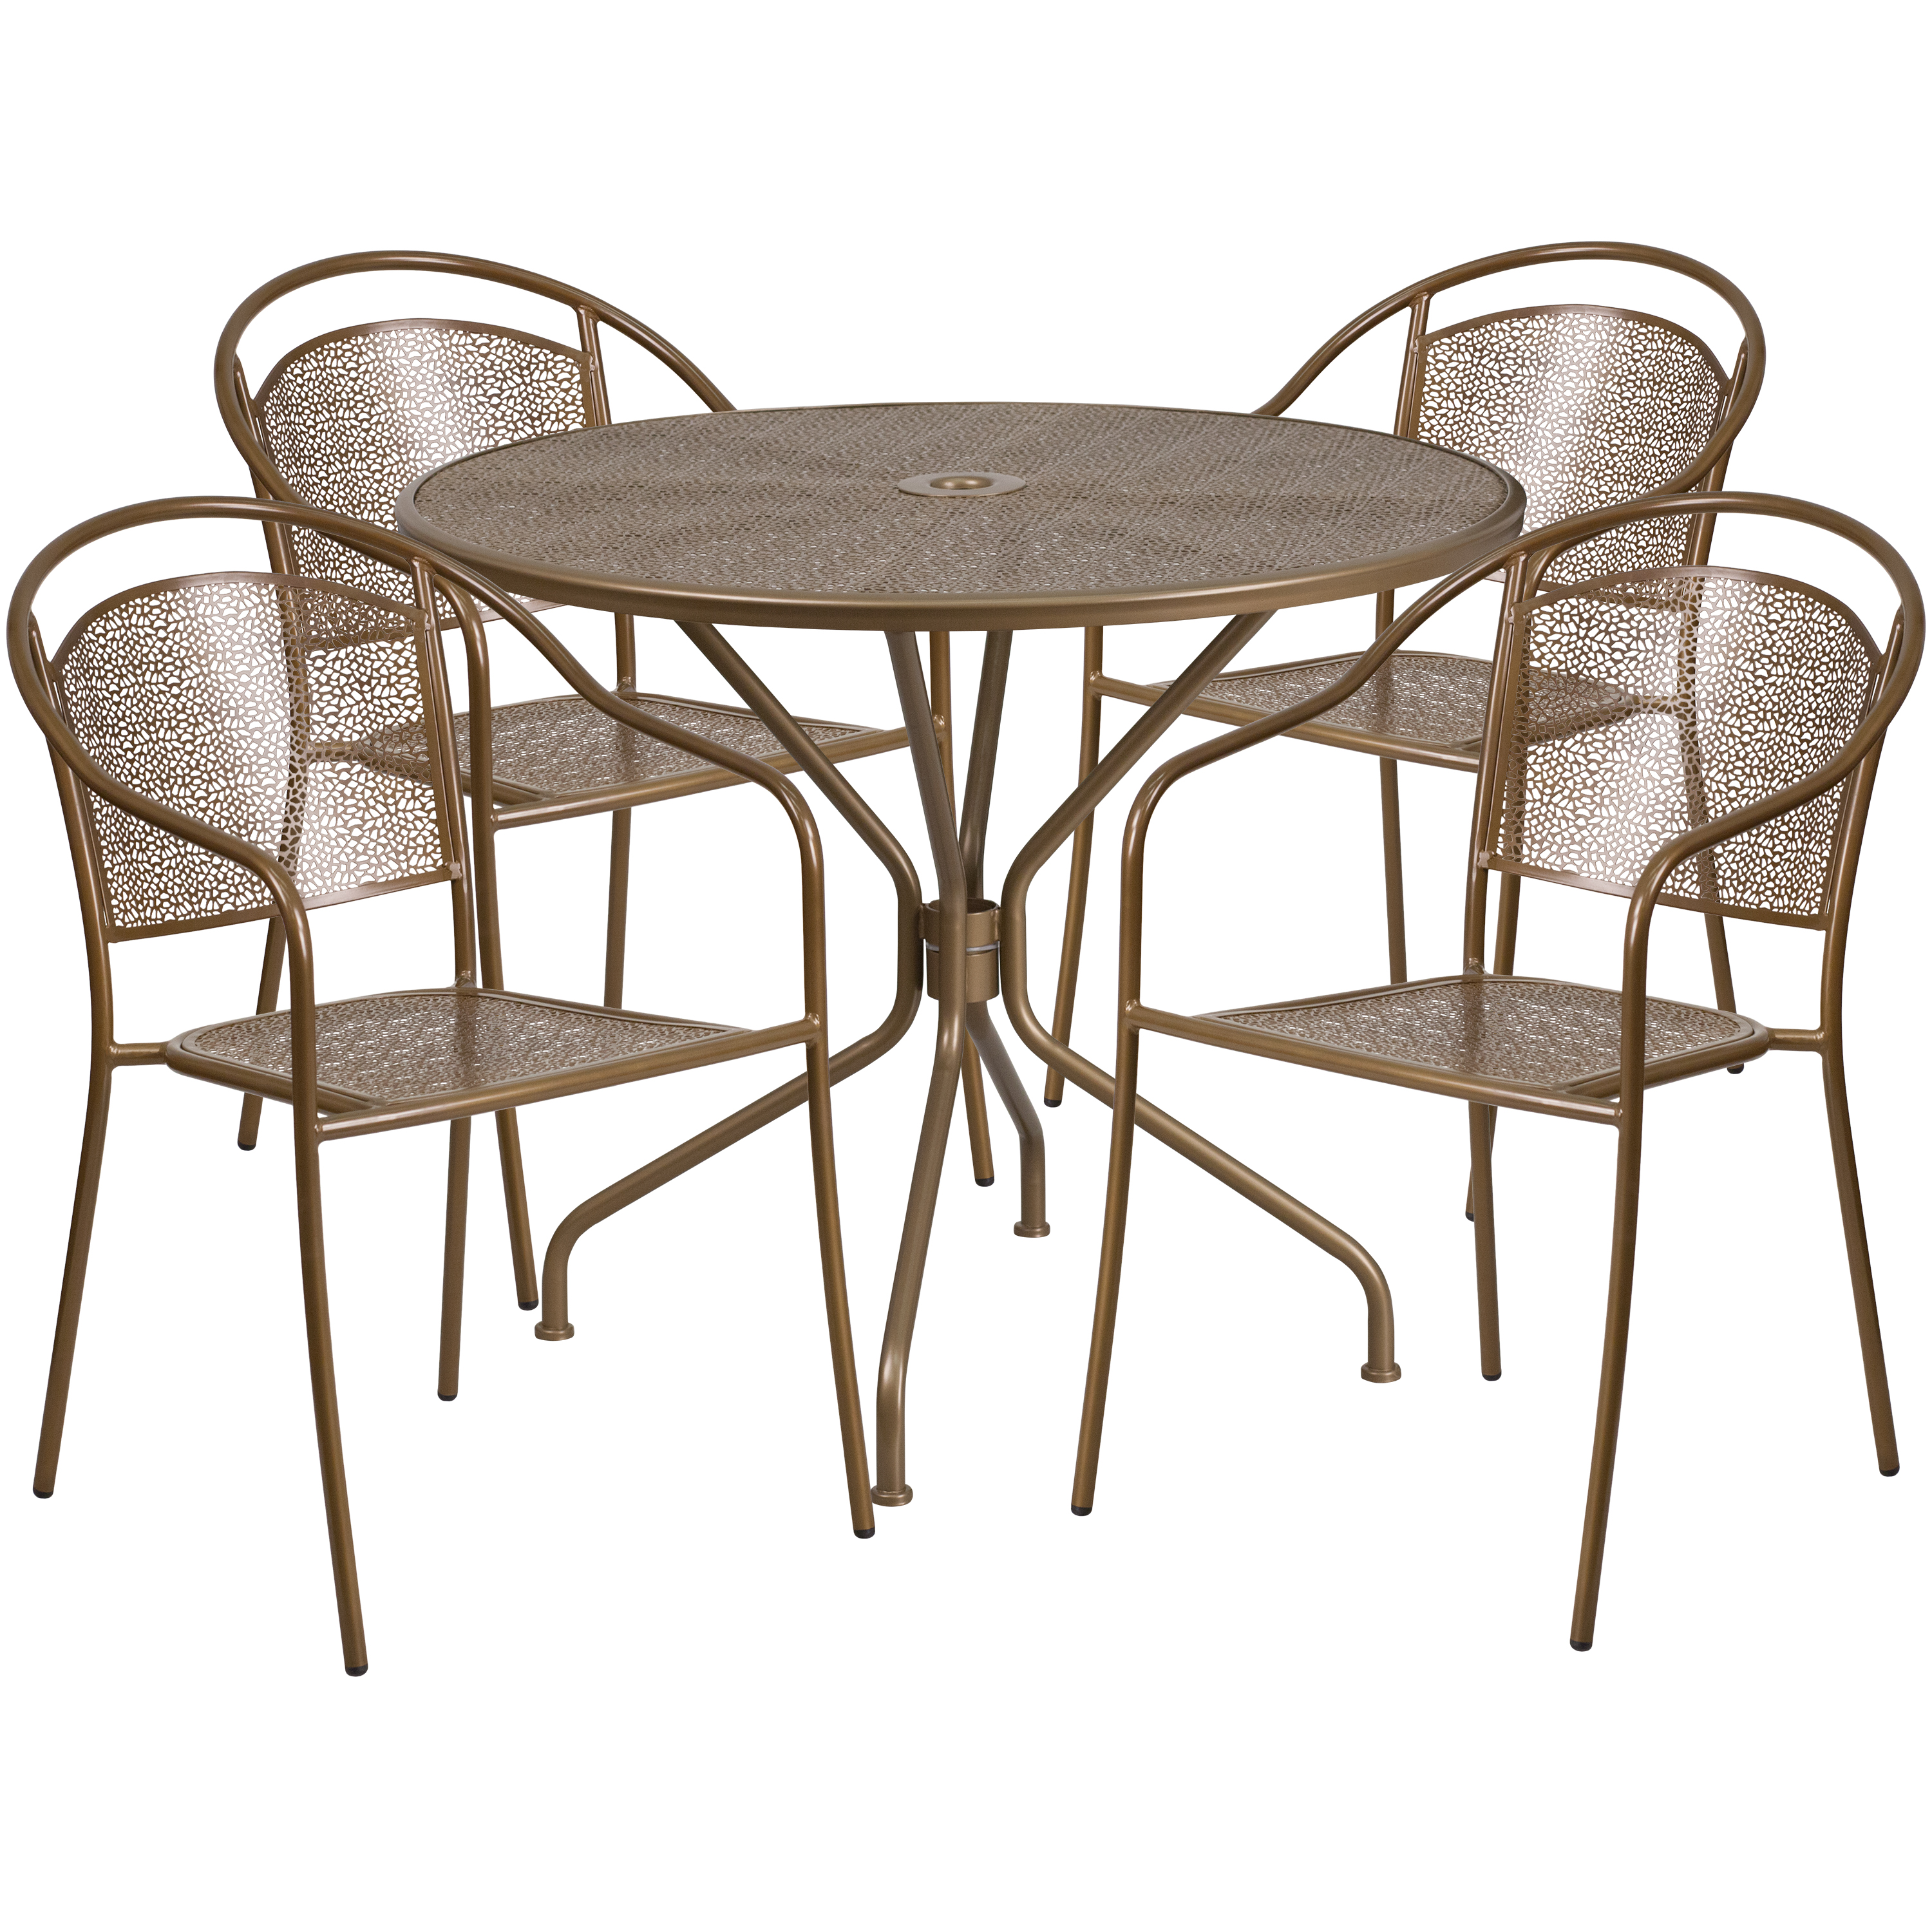 Flash Furniture 35.25'' Round Indoor-Outdoor Steel Patio Table Set with 4 Round Back Chairs, Multiple Colors